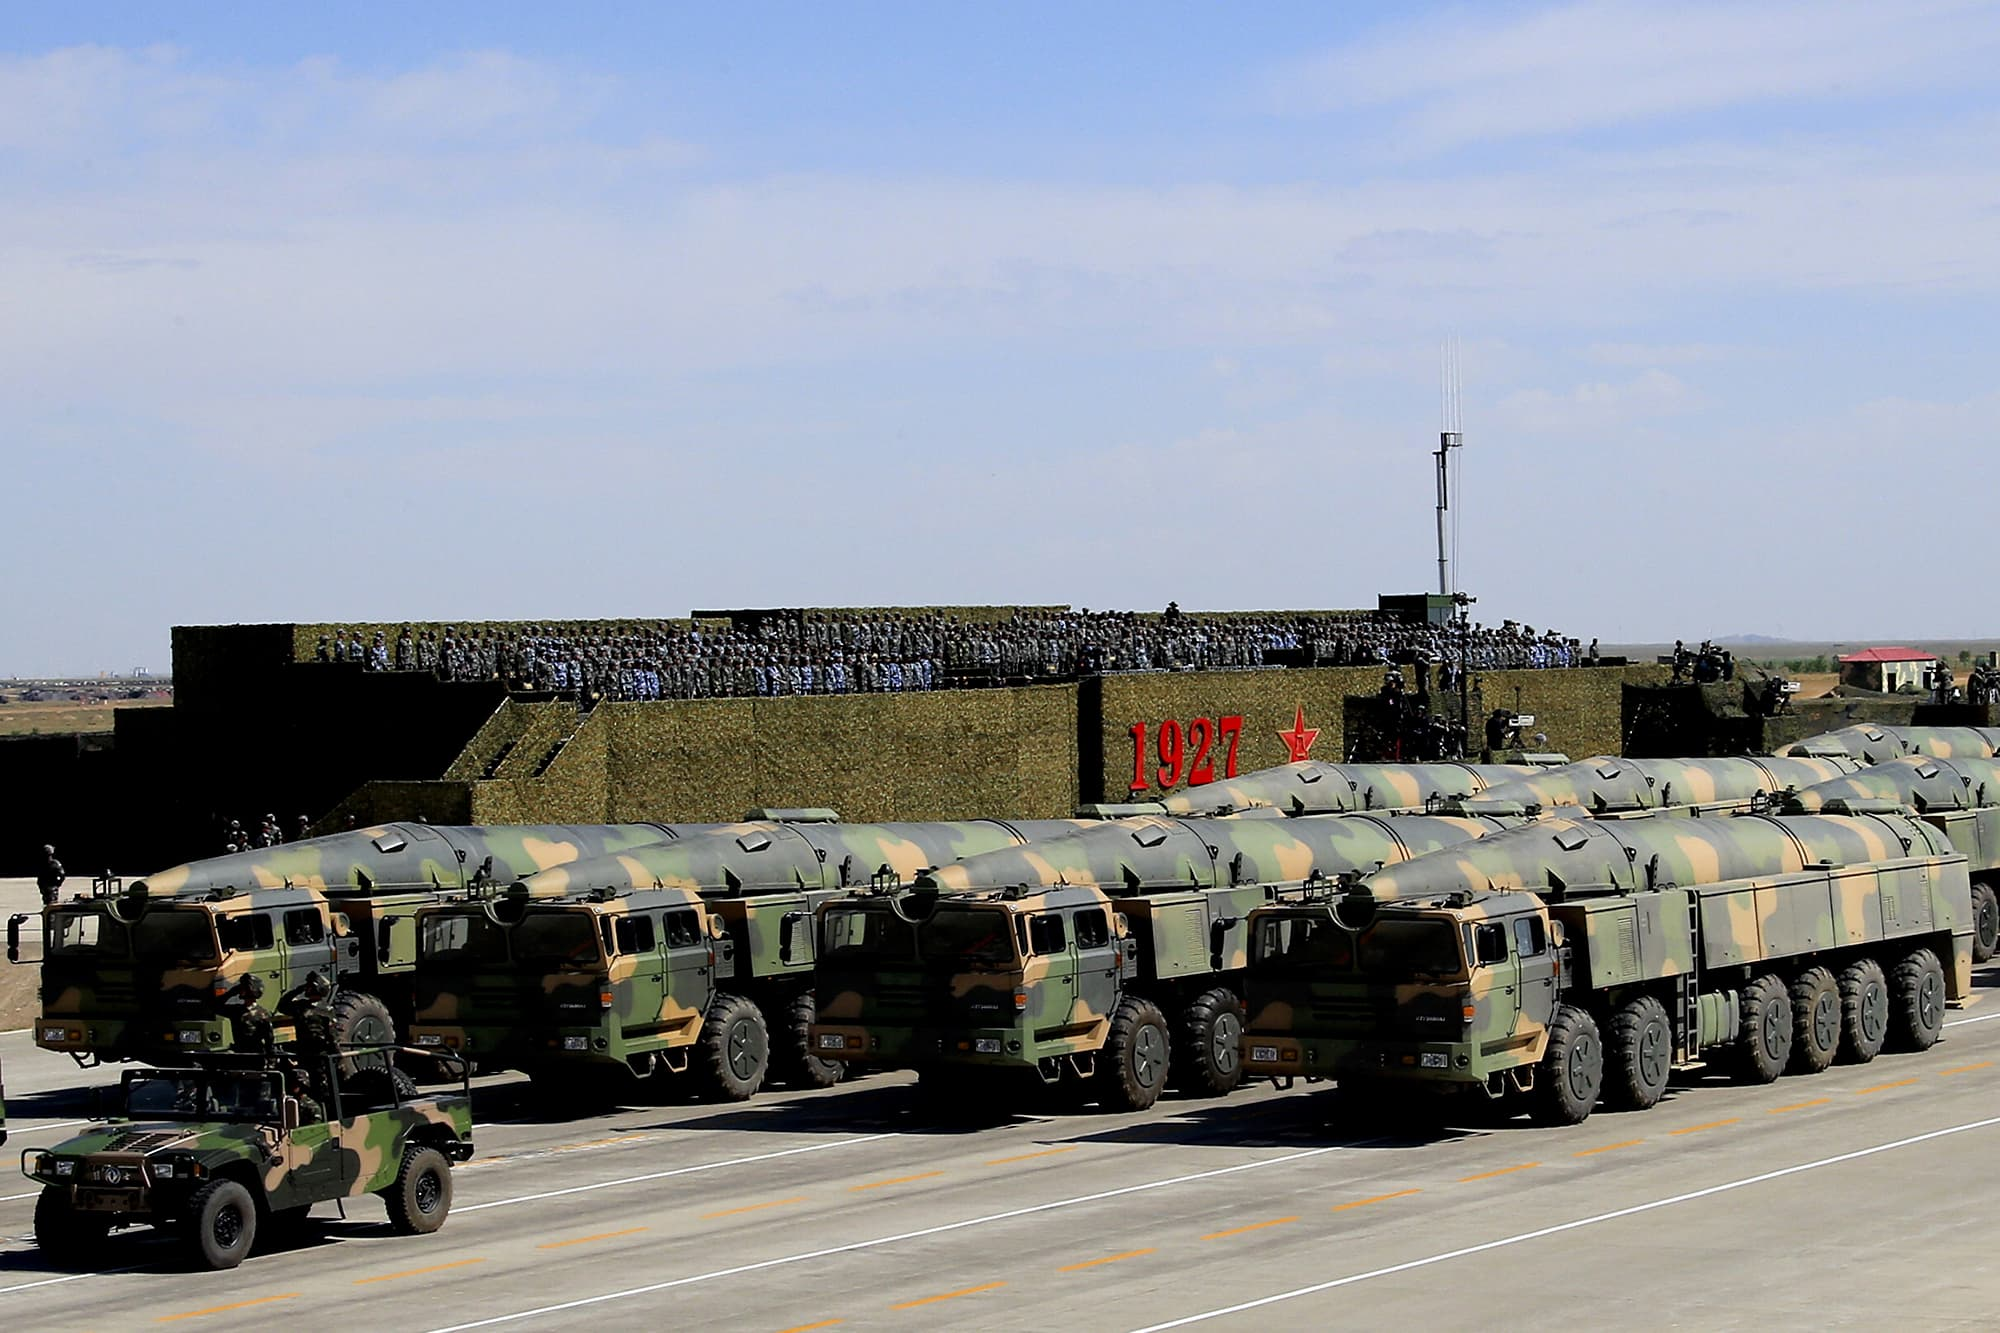 In this photo released by China's Xinhua News Agency, military vehicles carrying missiles for both nuclear and conventional strikes are driven past the VIP stage during a military parade to commemorate the 90th anniversary of the founding of the People's Liberation Army at Zhurihe training base in north China's Inner Mongolia Autonomous Region. ─ AP